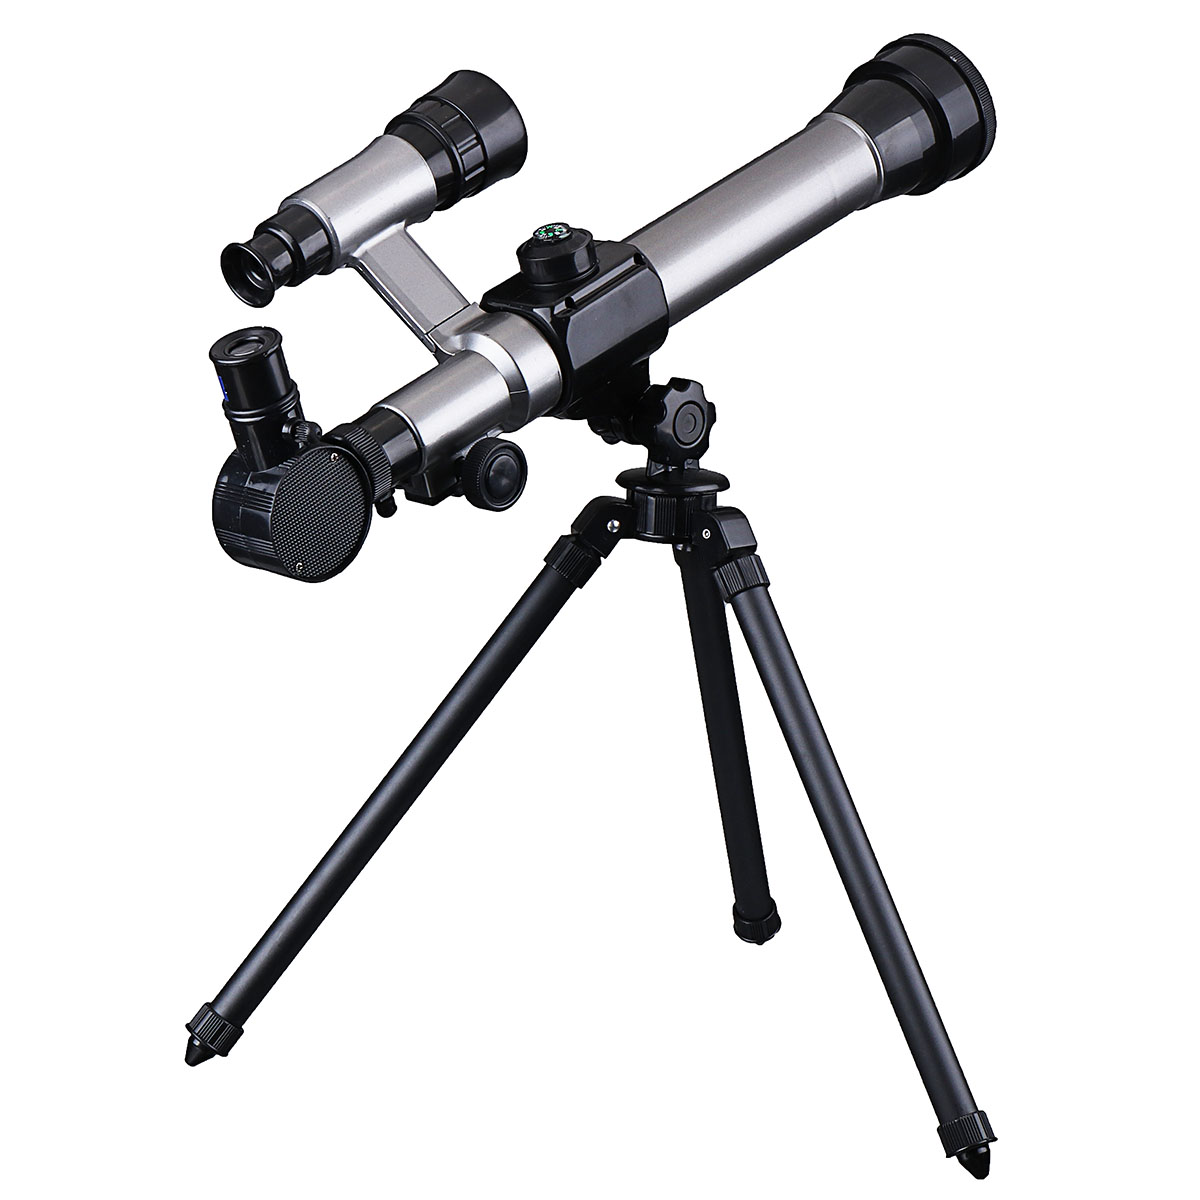 170mm Kids Beginner Astronomical Refractor Telescope Outdoor Camping Refractive Eyepieces Tripod